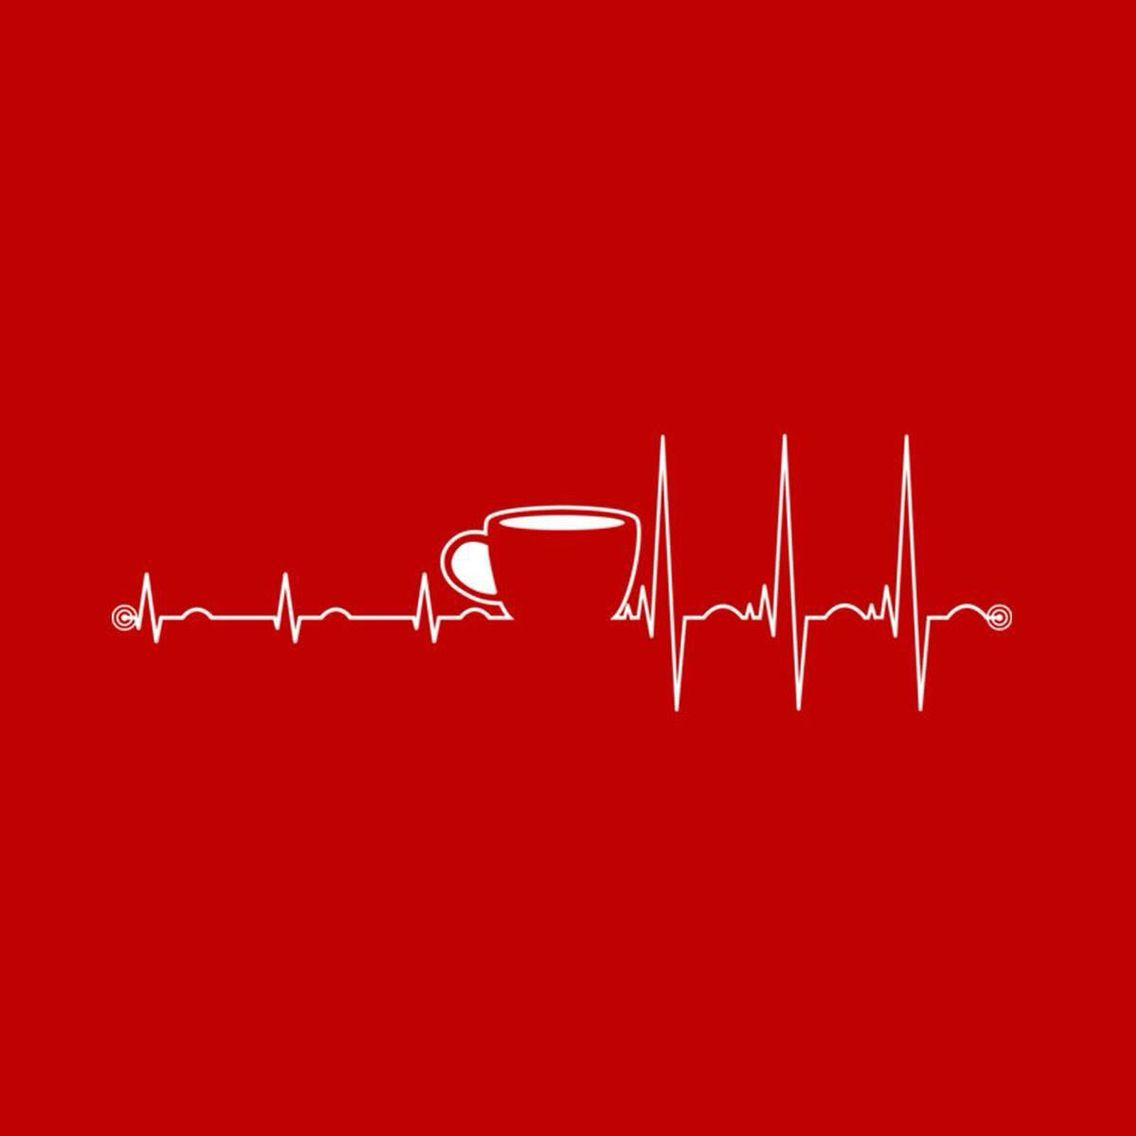 """""""The Caffeine Heartbeat""""- I don't drink caffeine but this still cracked me up haha:)"""